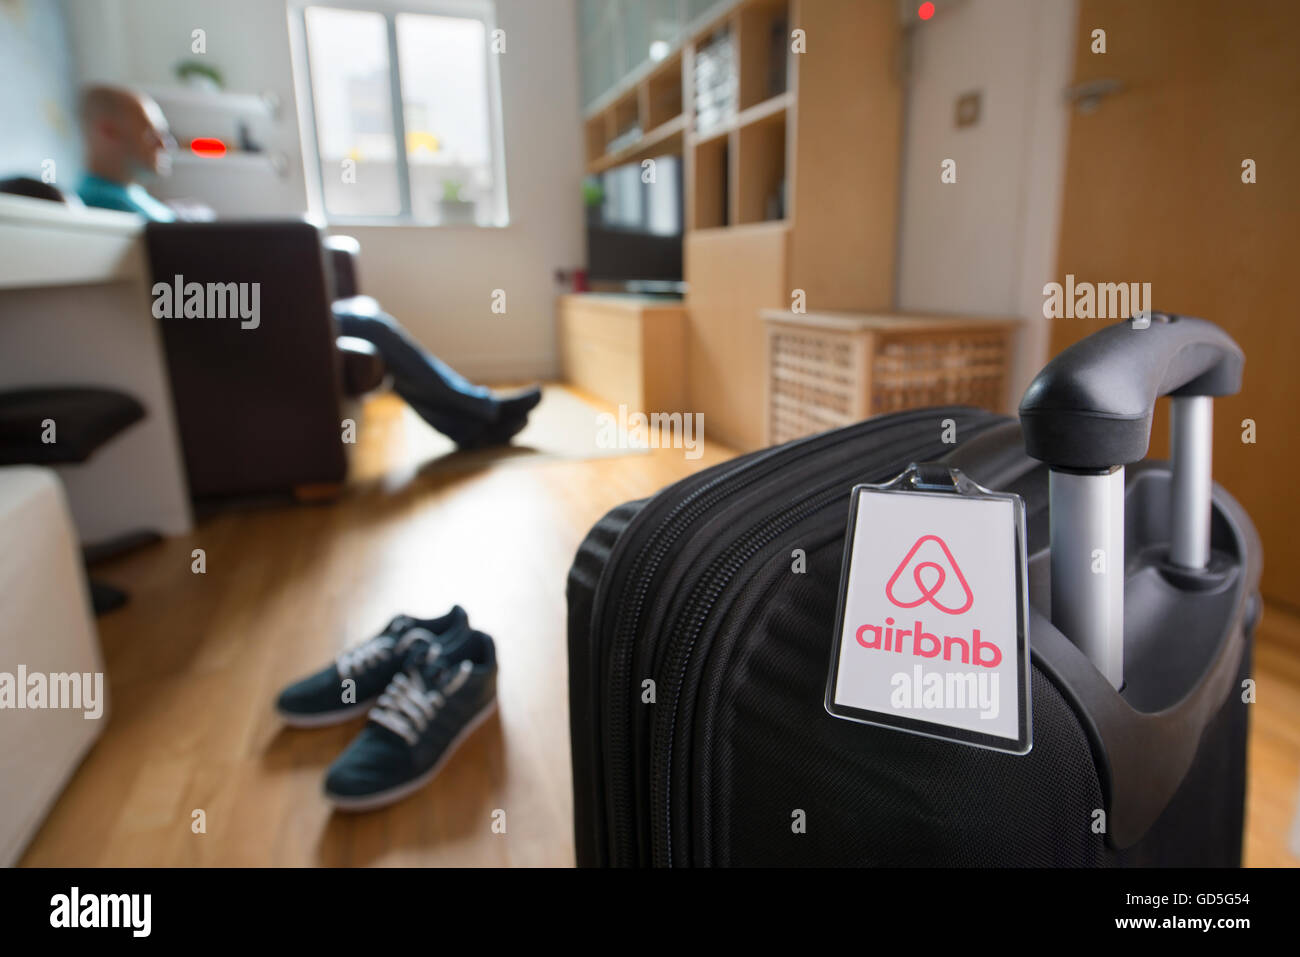 guest list stockfotos guest list bilder alamy. Black Bedroom Furniture Sets. Home Design Ideas